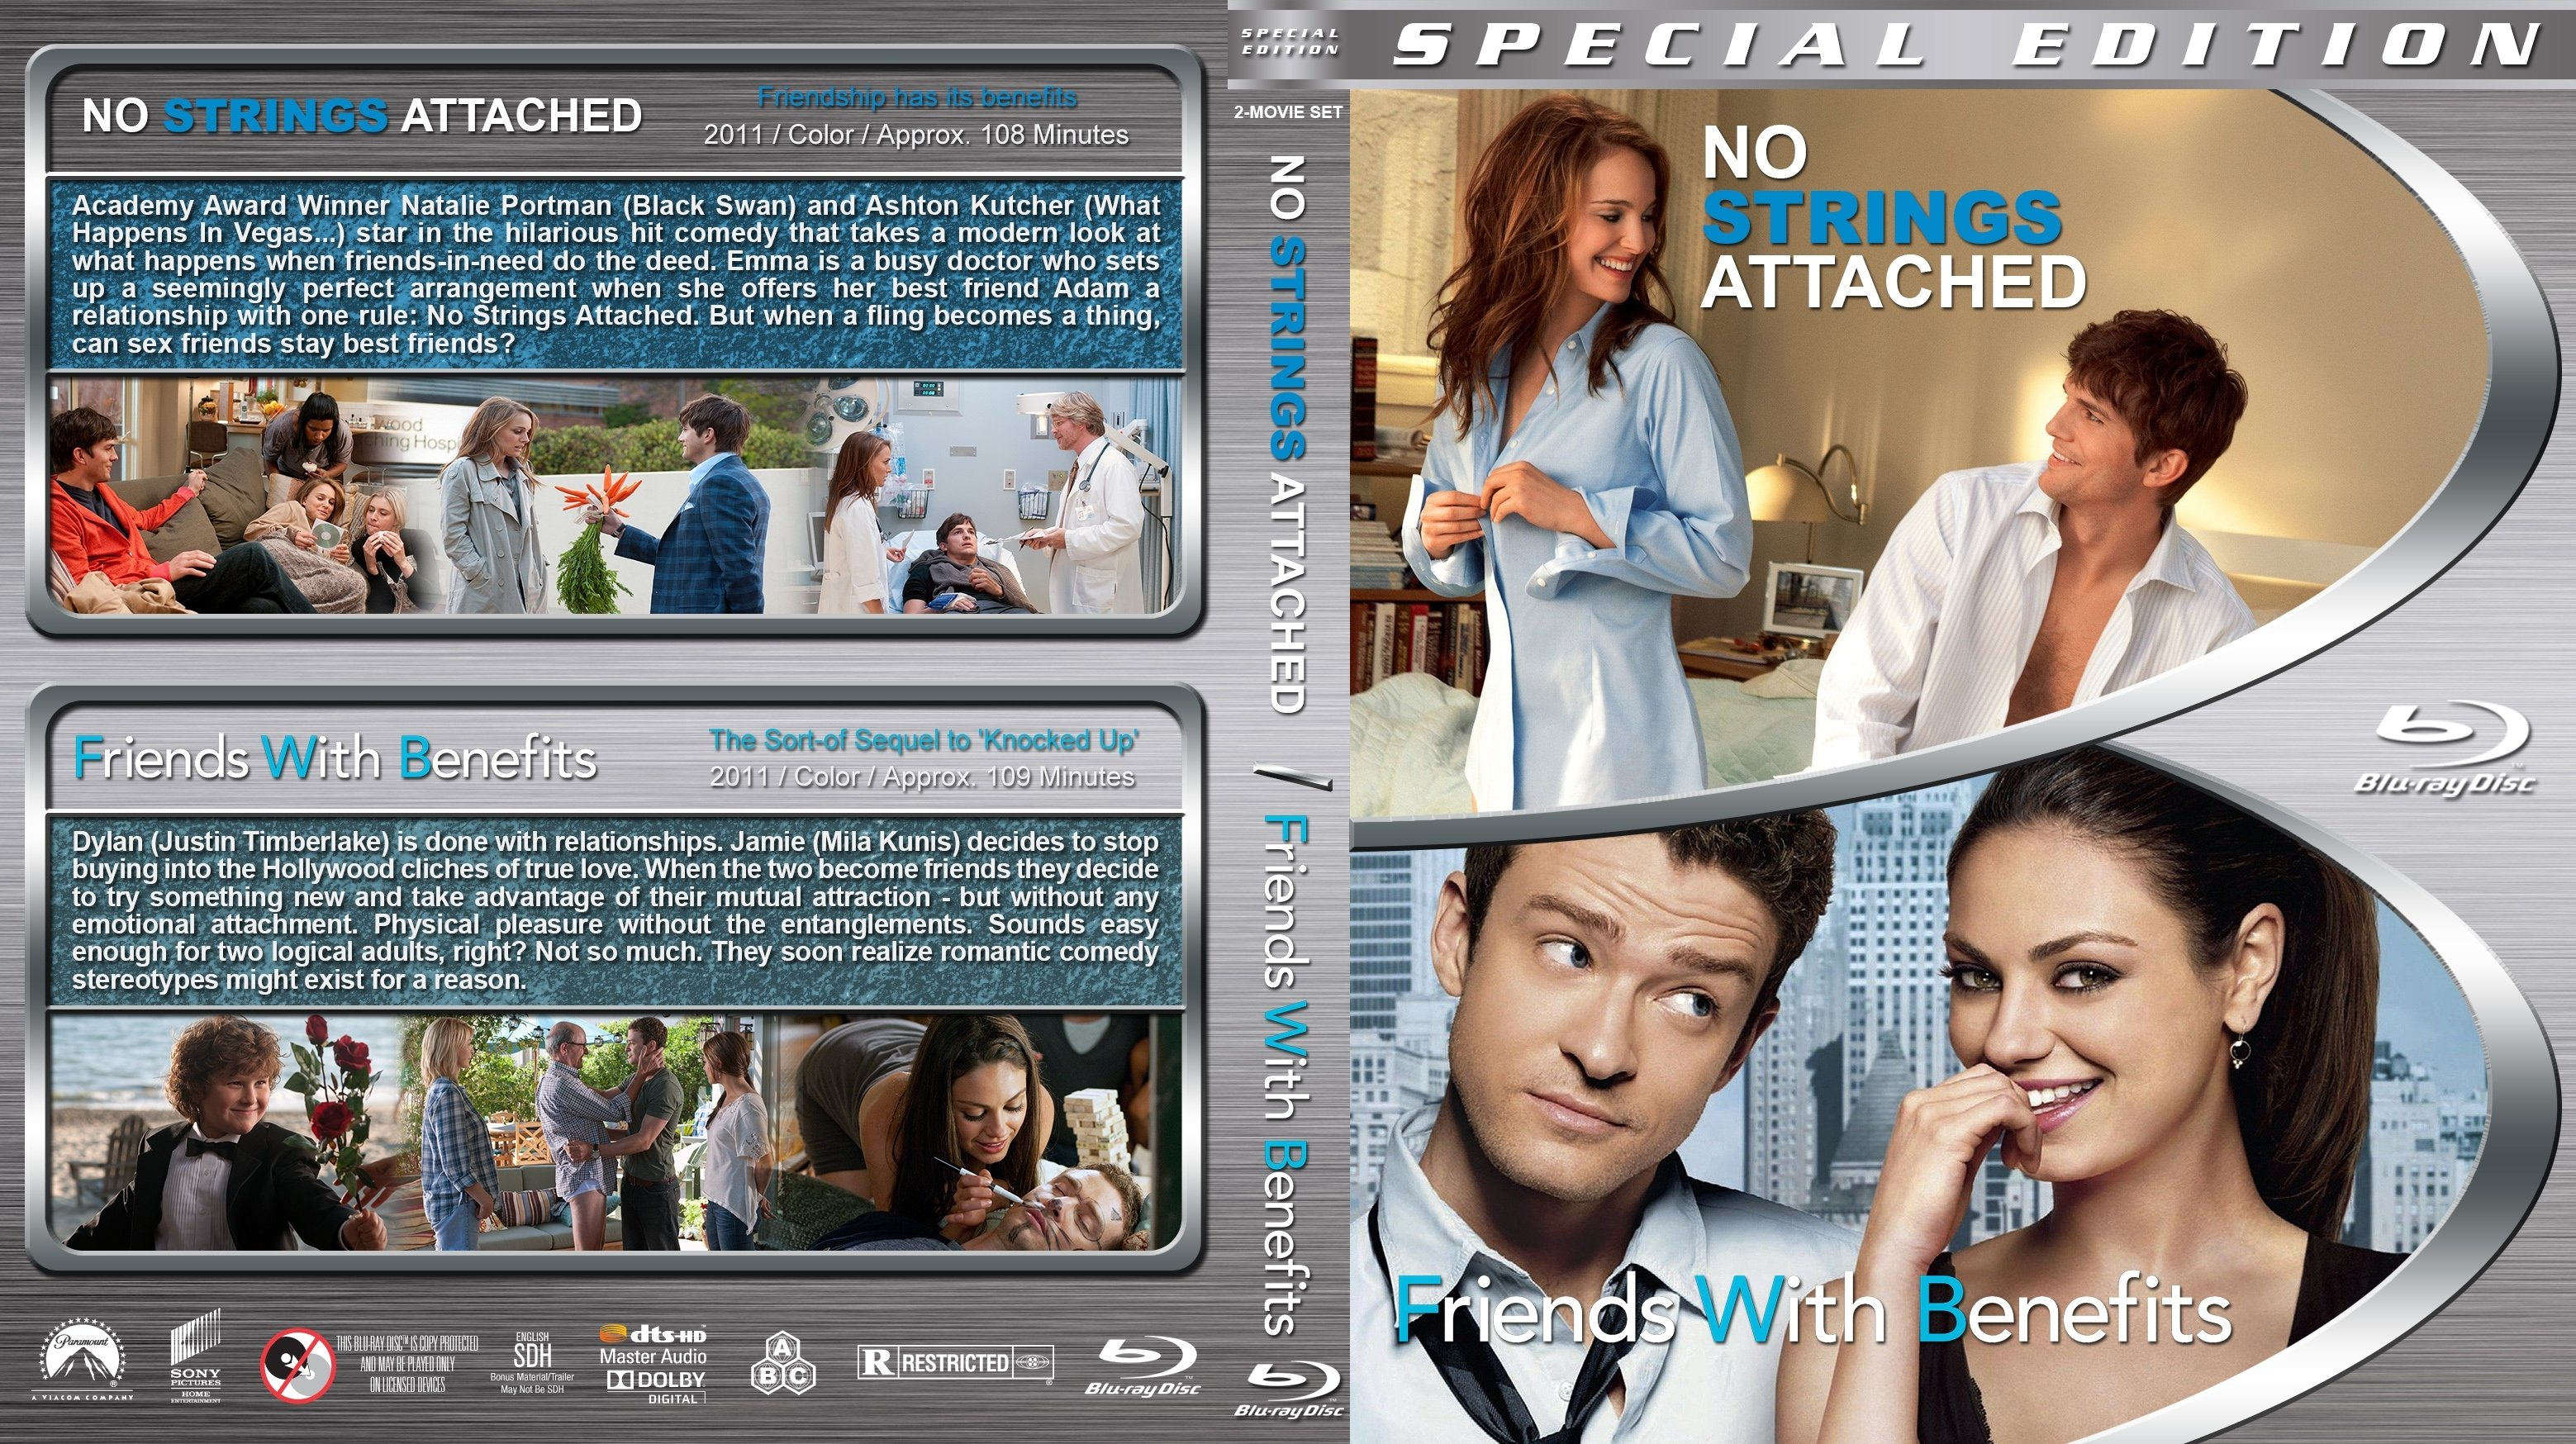 10 Stylish Is Friends With Benefits A Good Idea no strings attached friends with benefits double feature 2011 r1 2021